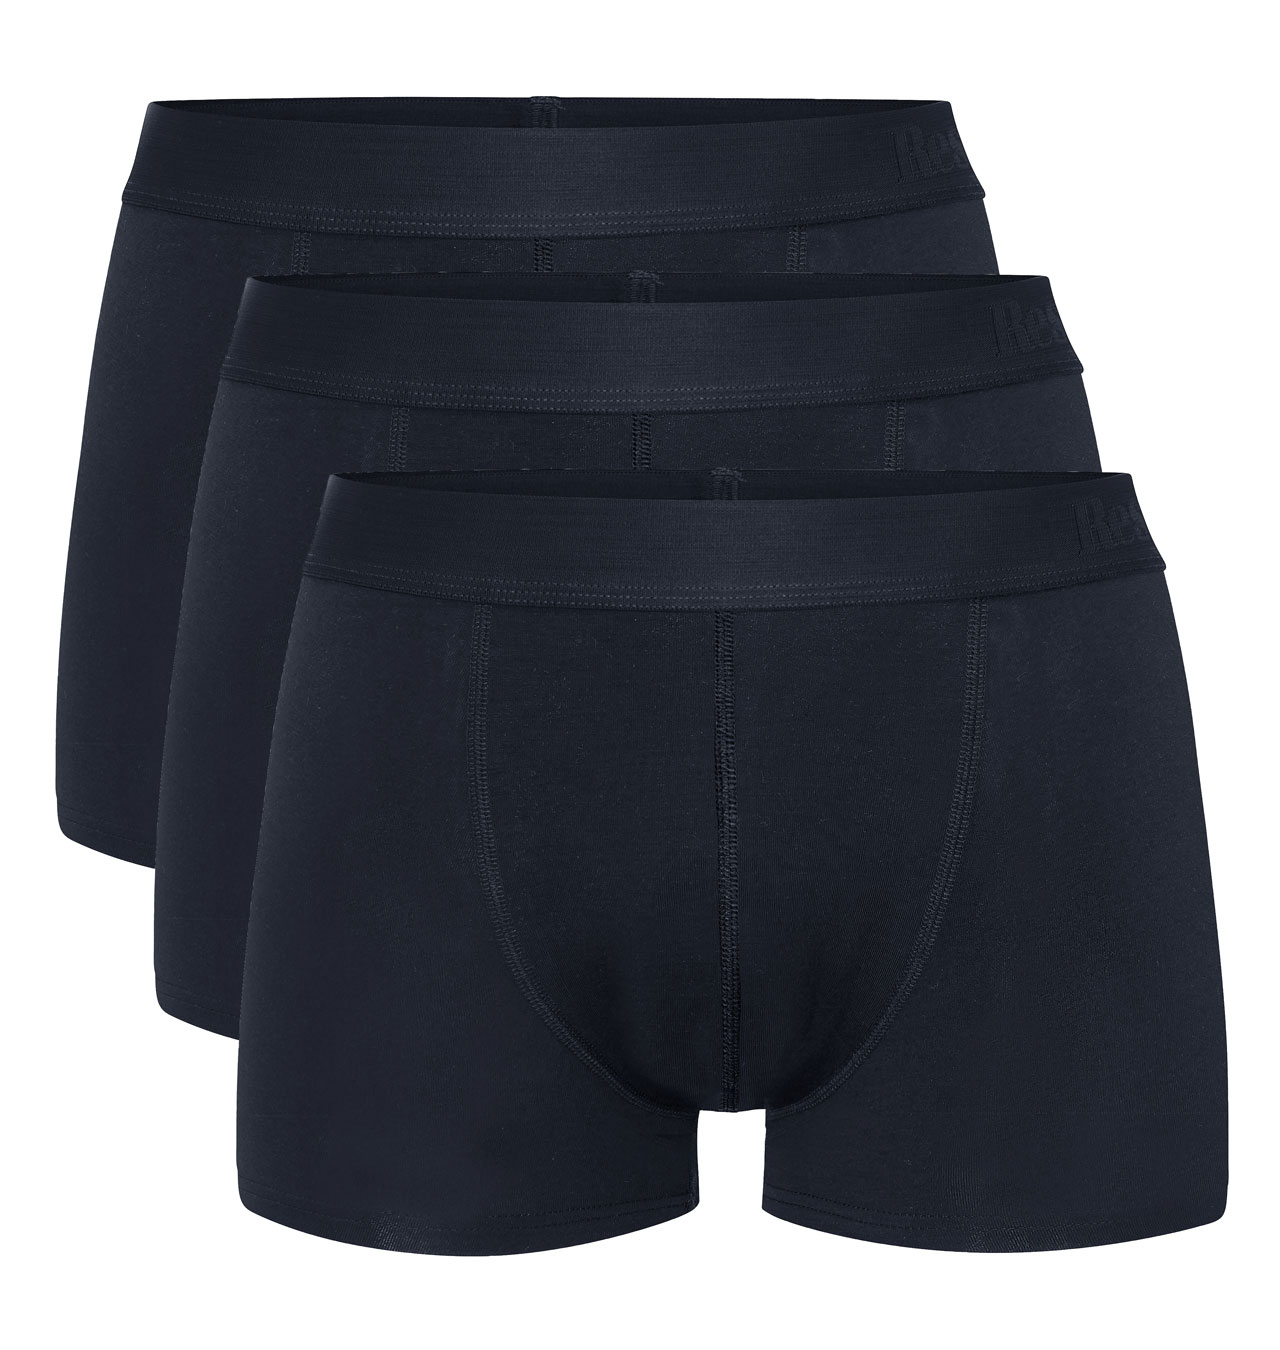 Resterods---Boxer-Trunk-Lyocell-3-pack---Navy6